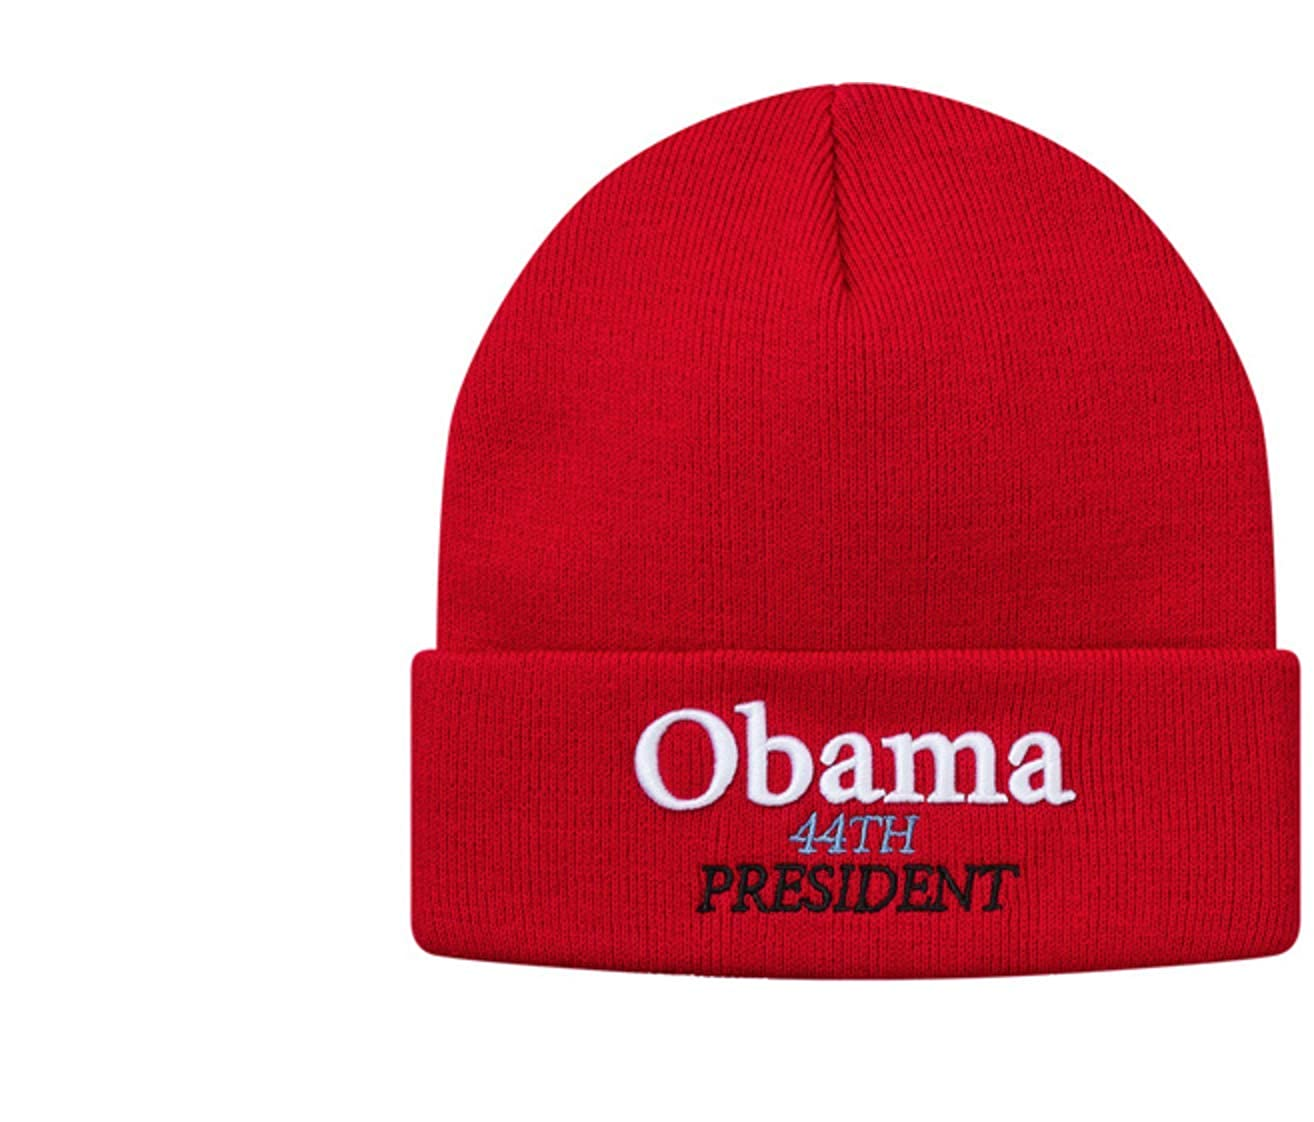 5bd3a37d1703 Amazon.com  SupremeNewYork Supreme Obama Beanie Red 100% Authentic Real  Designer Sold Out Rare-  Clothing